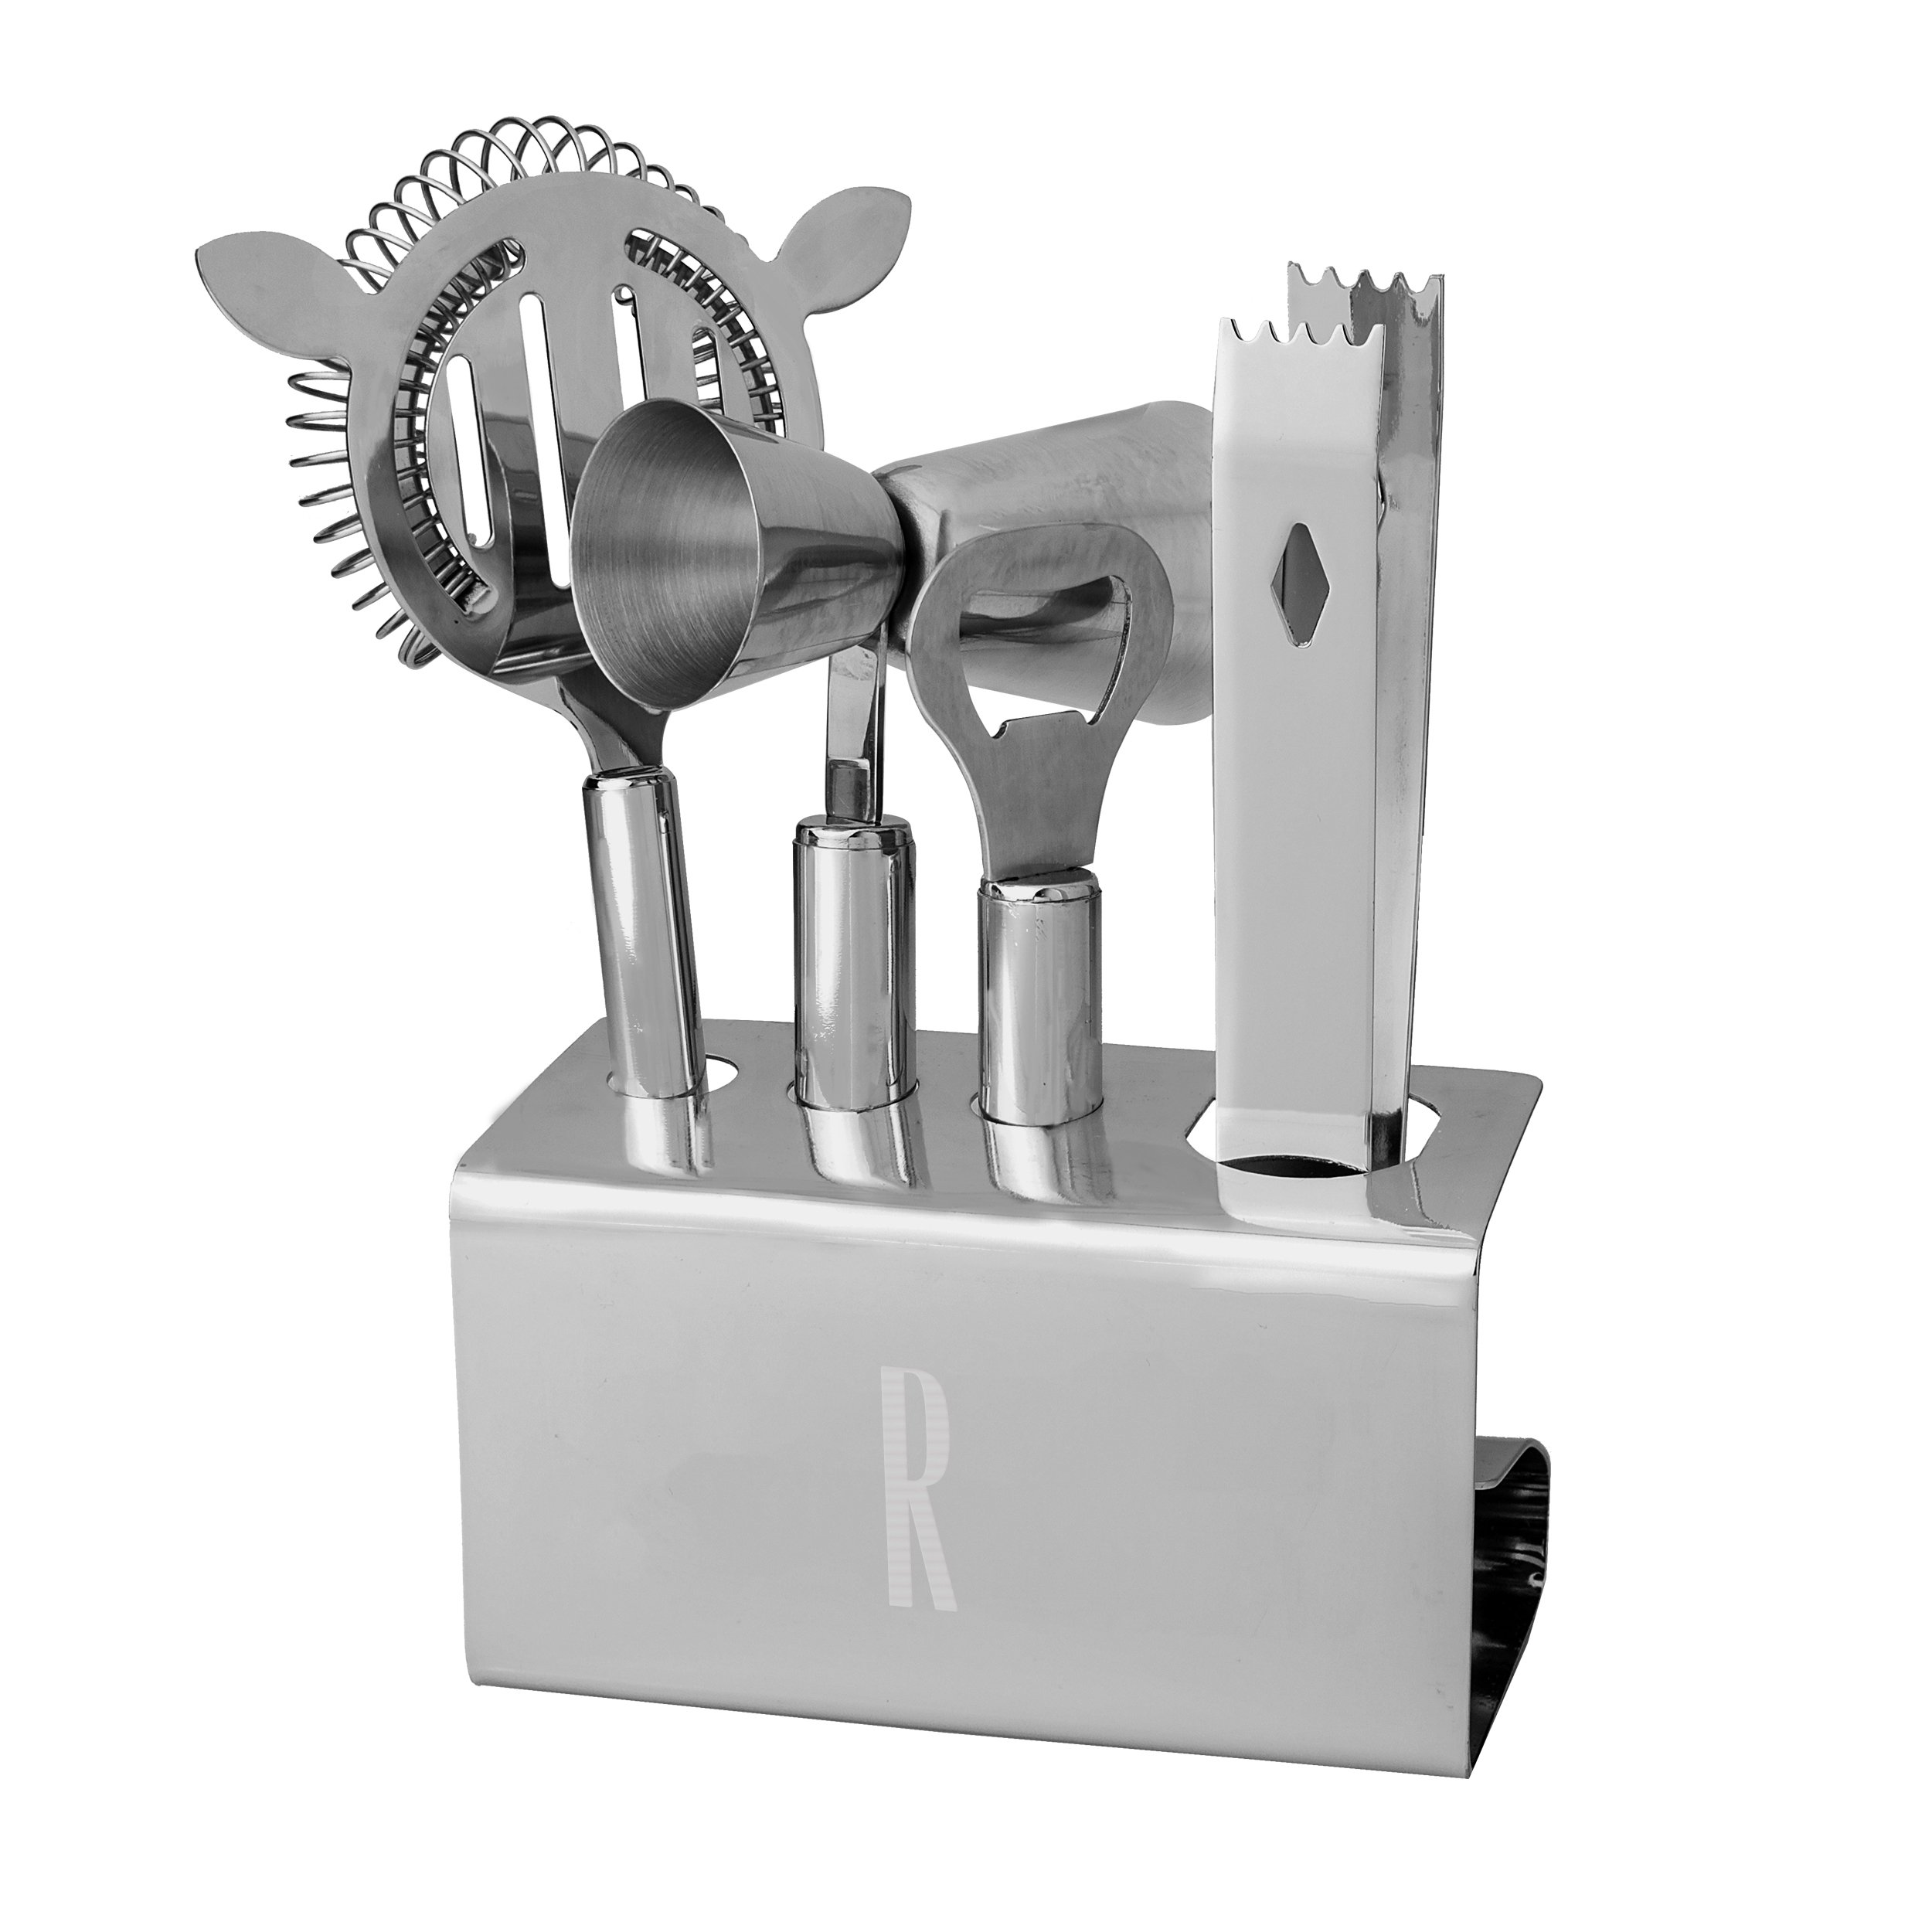 Cathy's Concepts Personalized Stainless Steel Mixology Set, Letter R